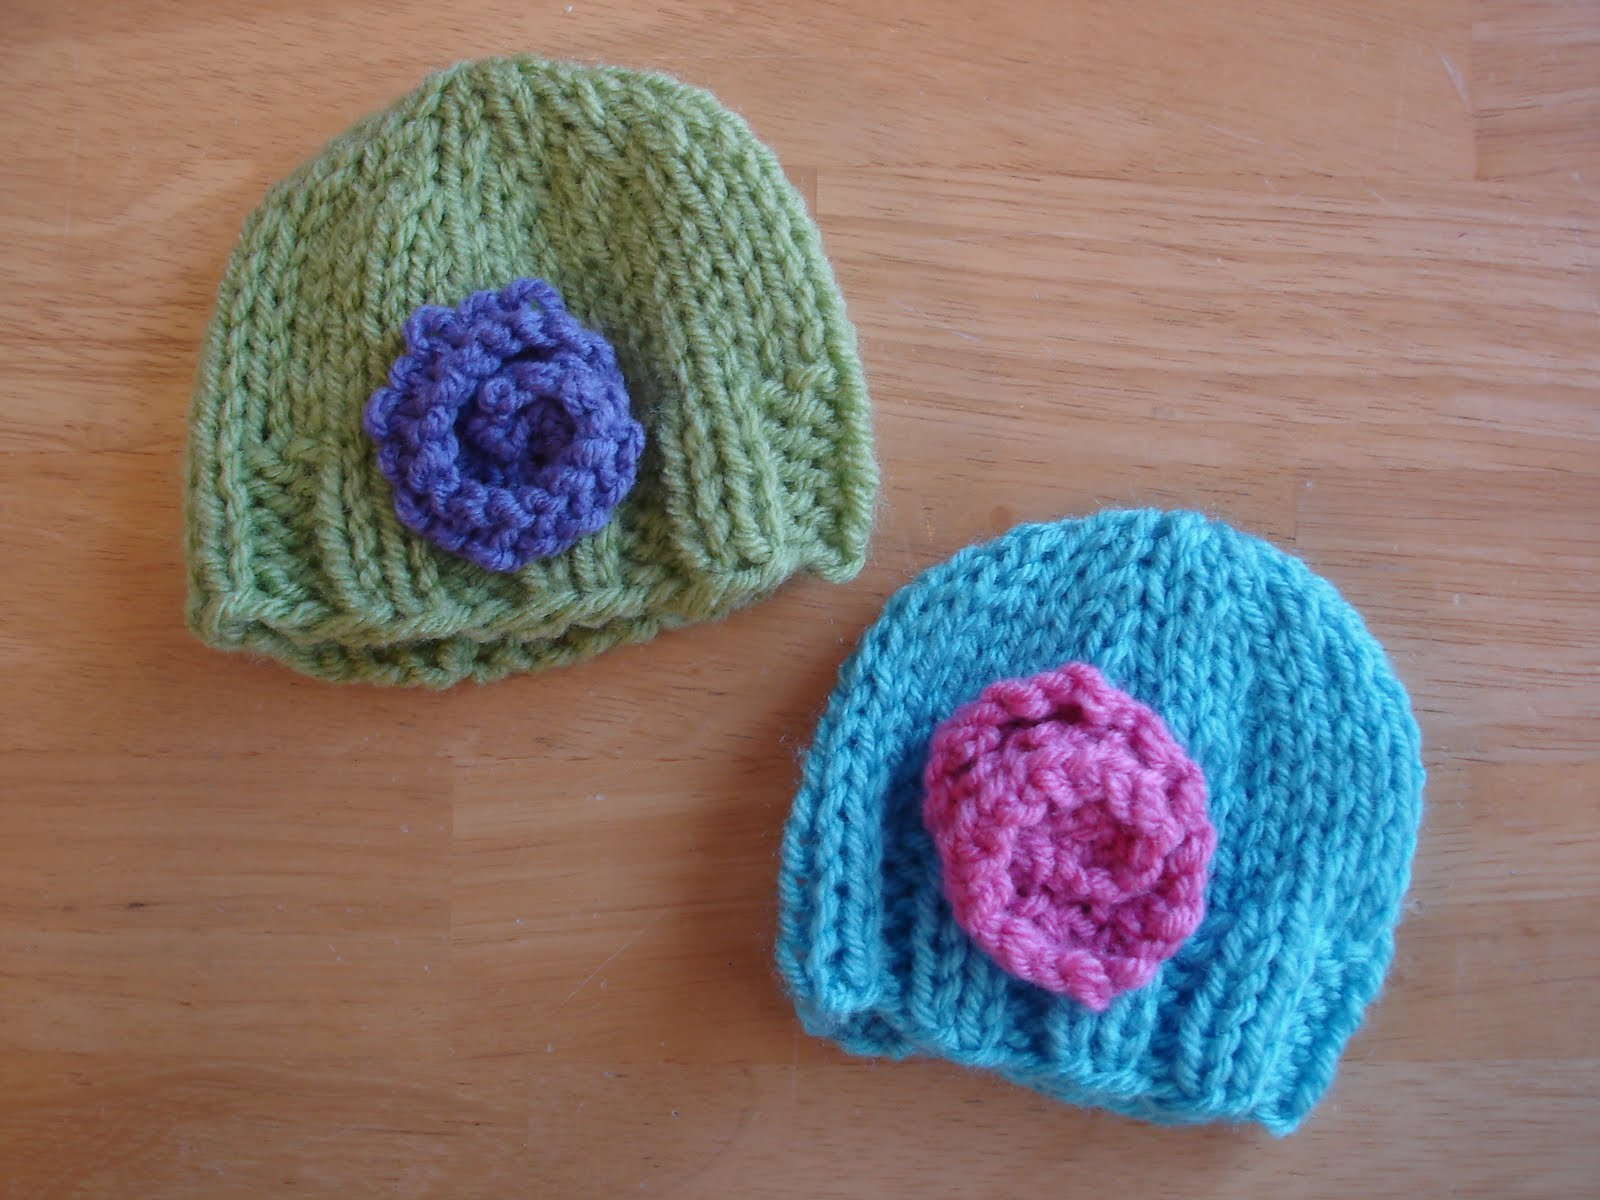 Free Knitted Doll Pattern : Fiber Flux: Free Knitting Pattern...Baby Doll Hats!